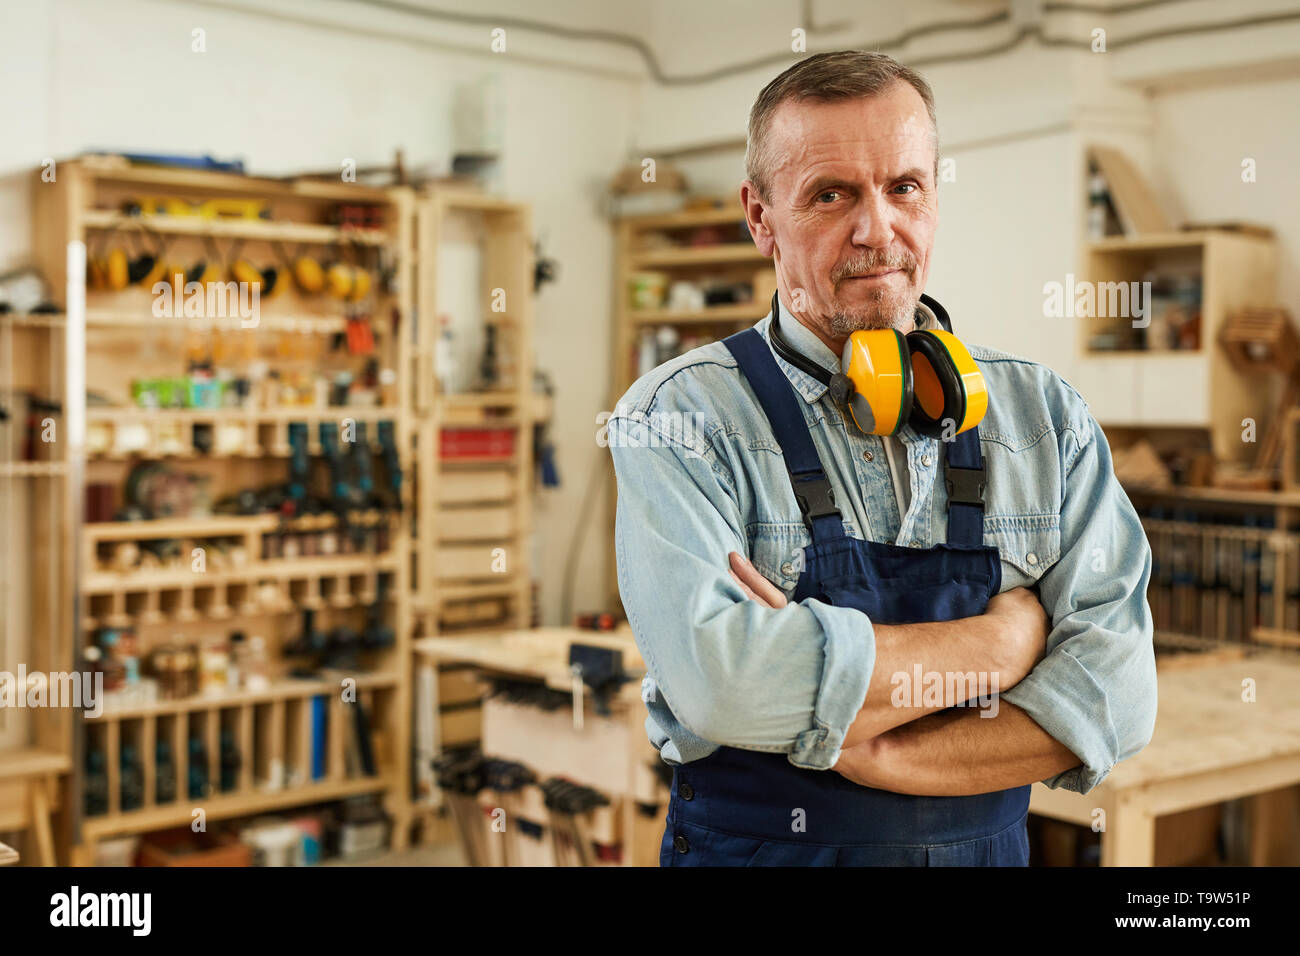 Waist up portrait of confident senior carpenter looking at camera while posing in joinery, copy space - Stock Image